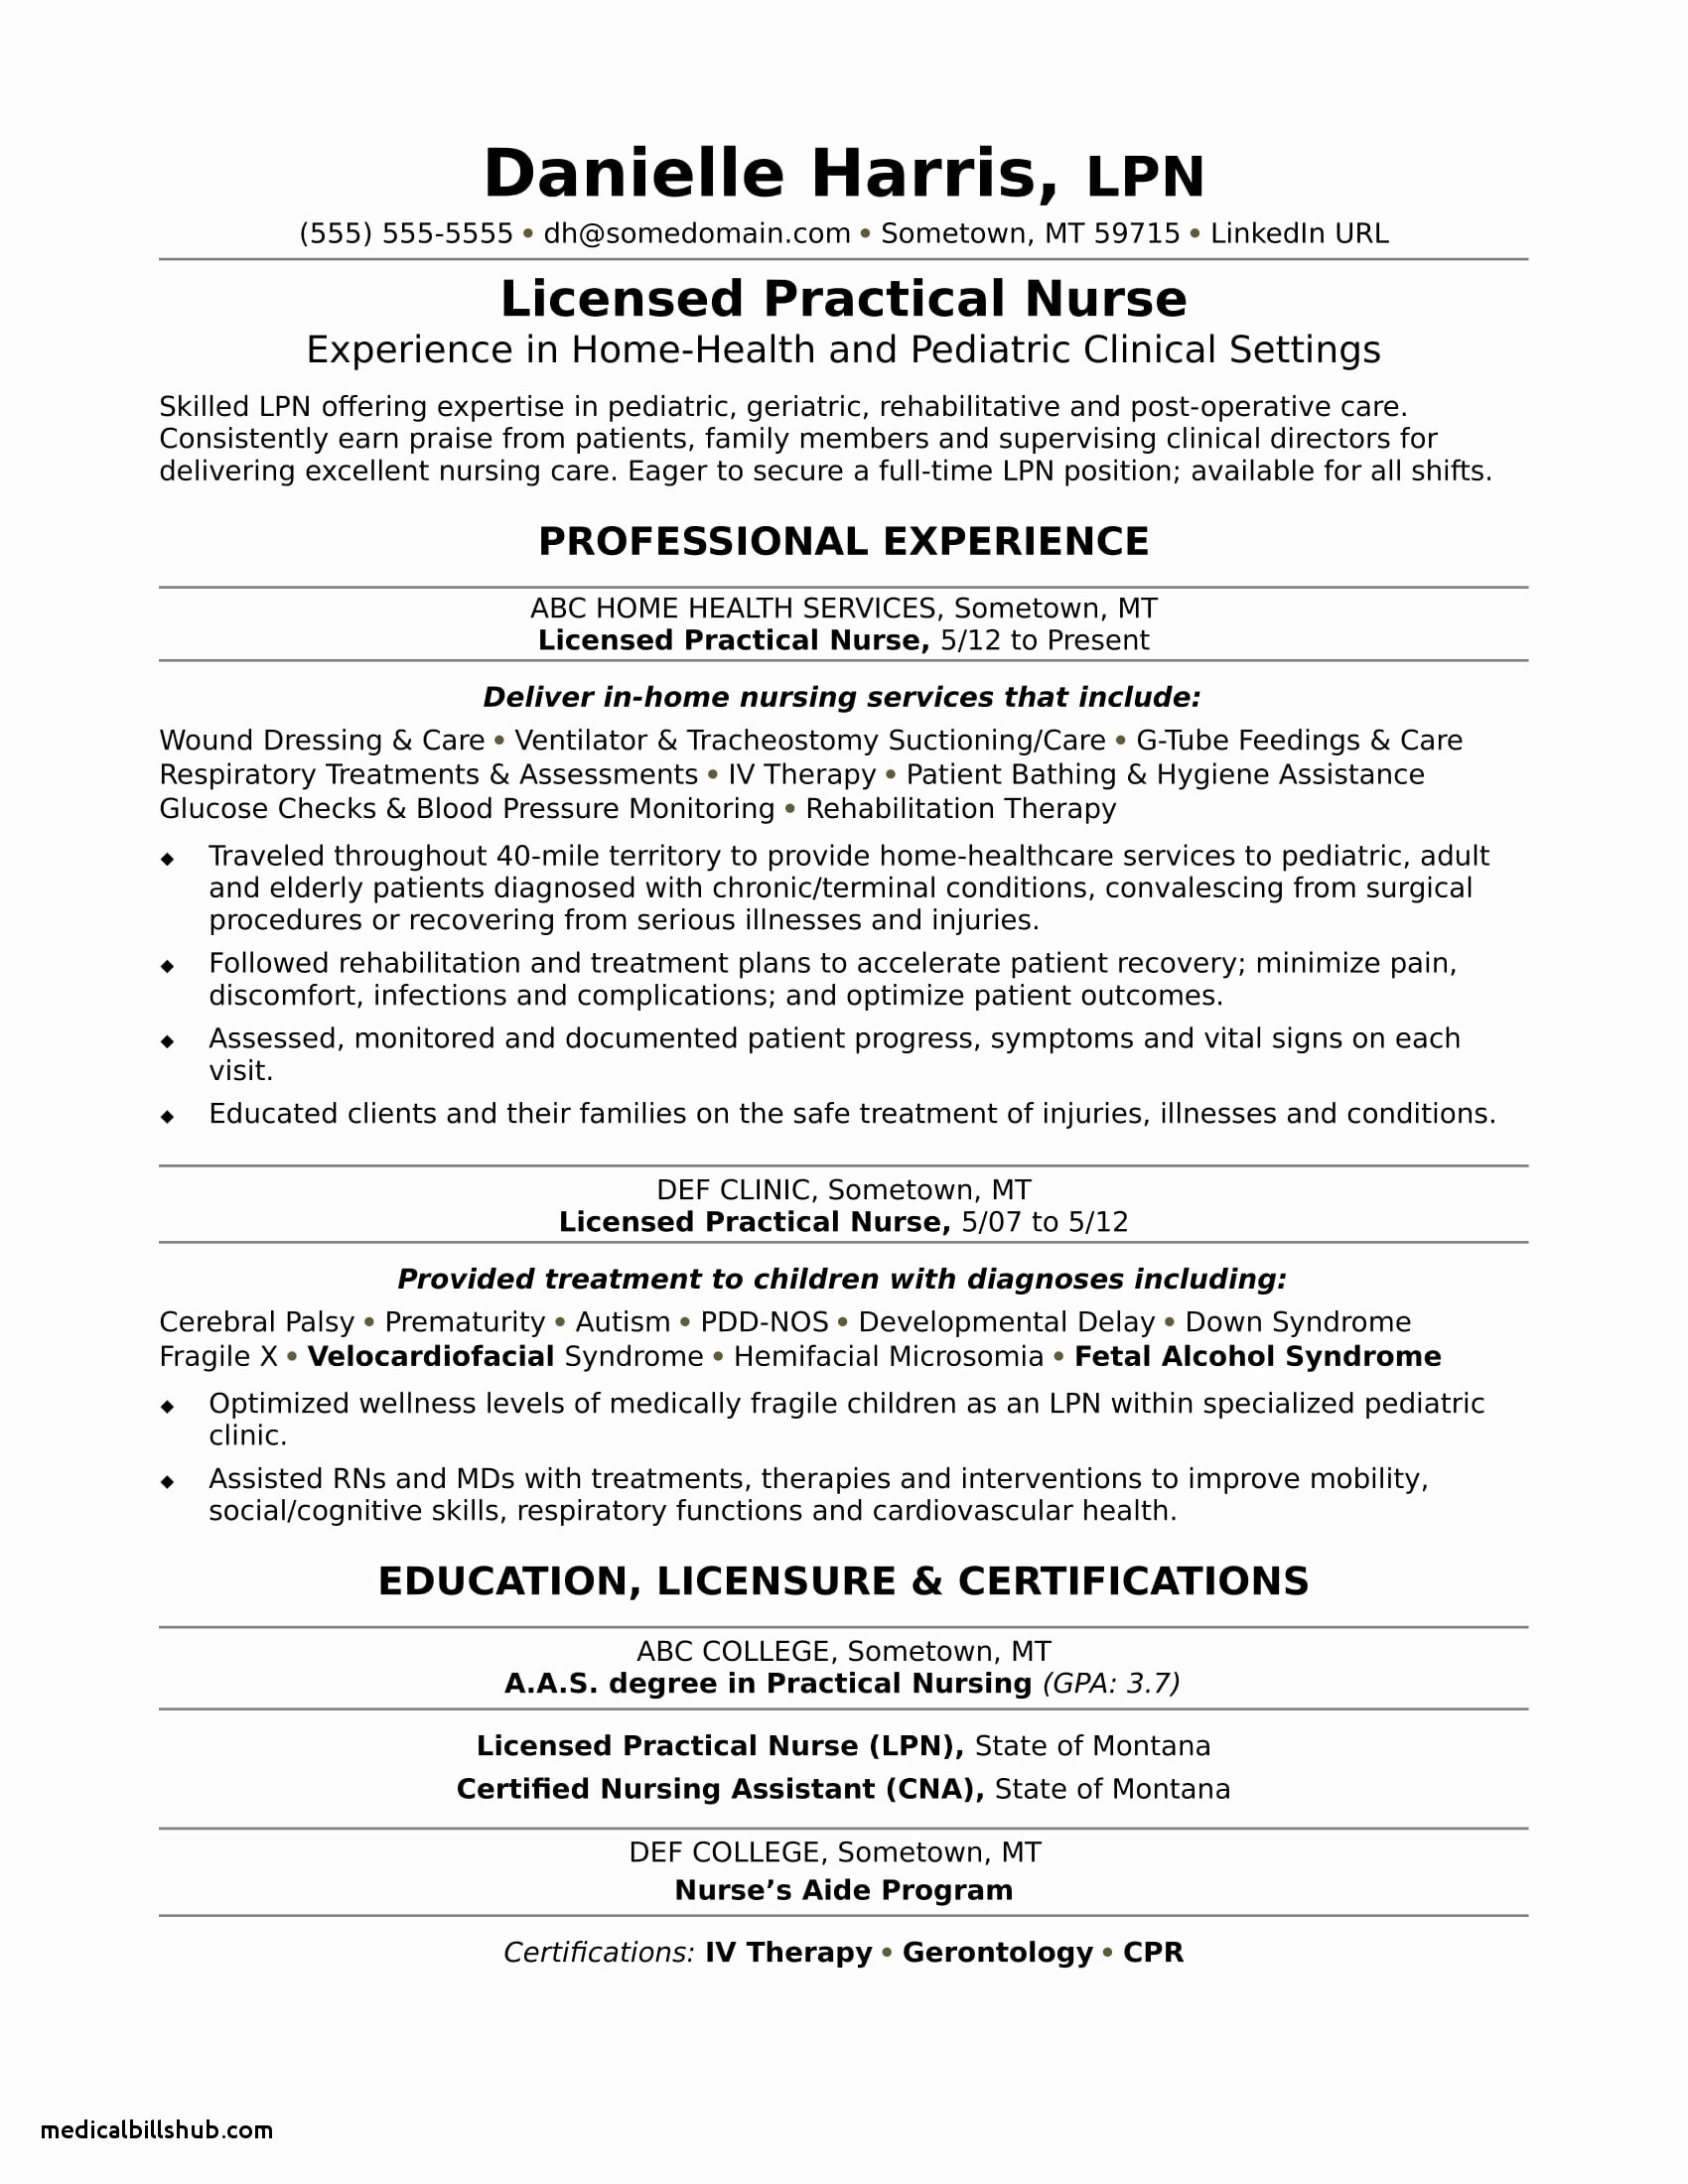 New Grad Nursing Resume Clinical Experience associates